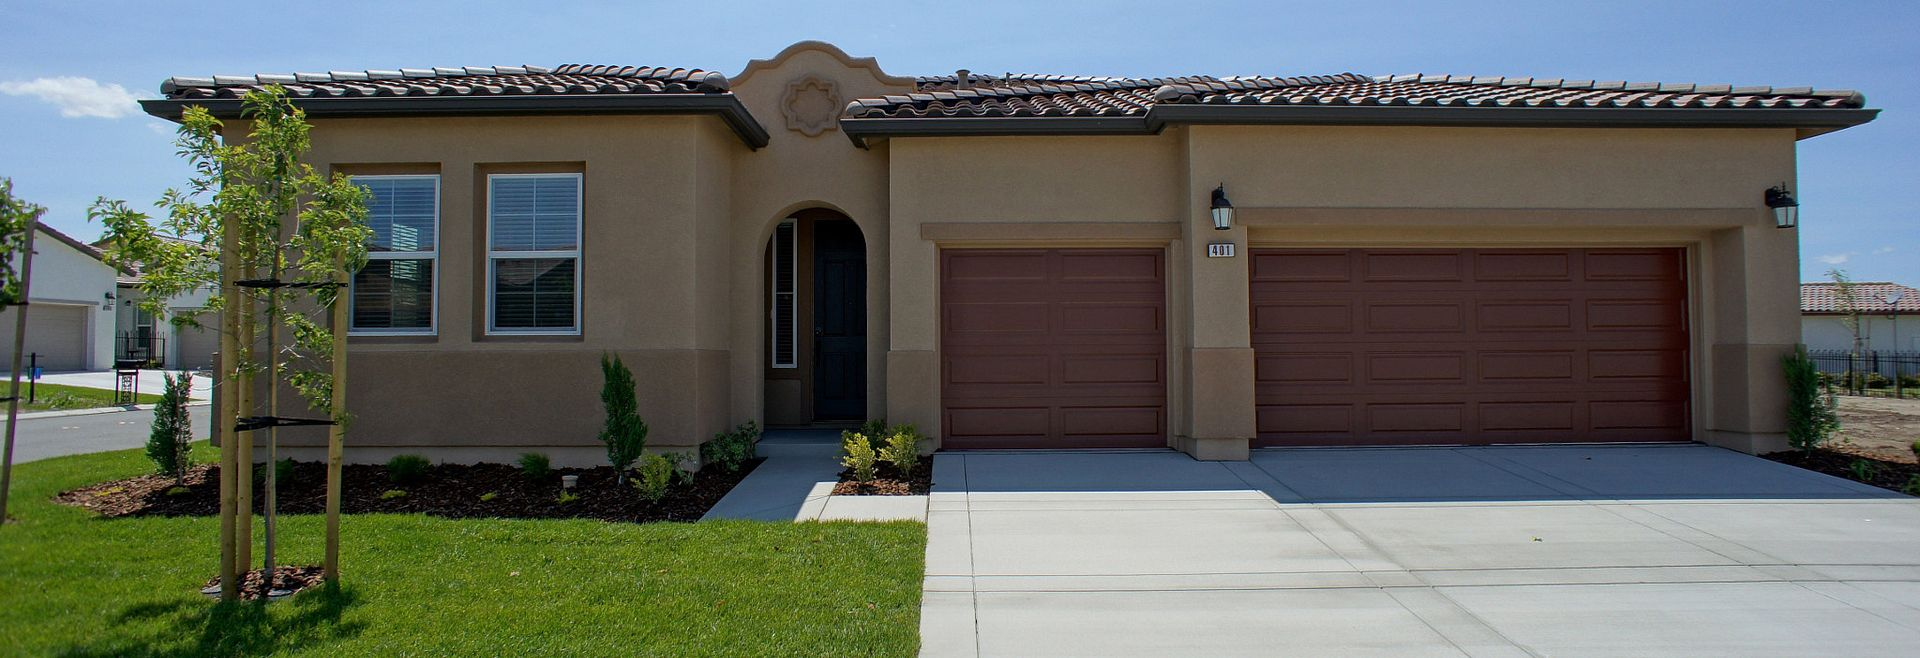 Trilogy at Rio Vista by Shea Homes in Rio Vista, CA